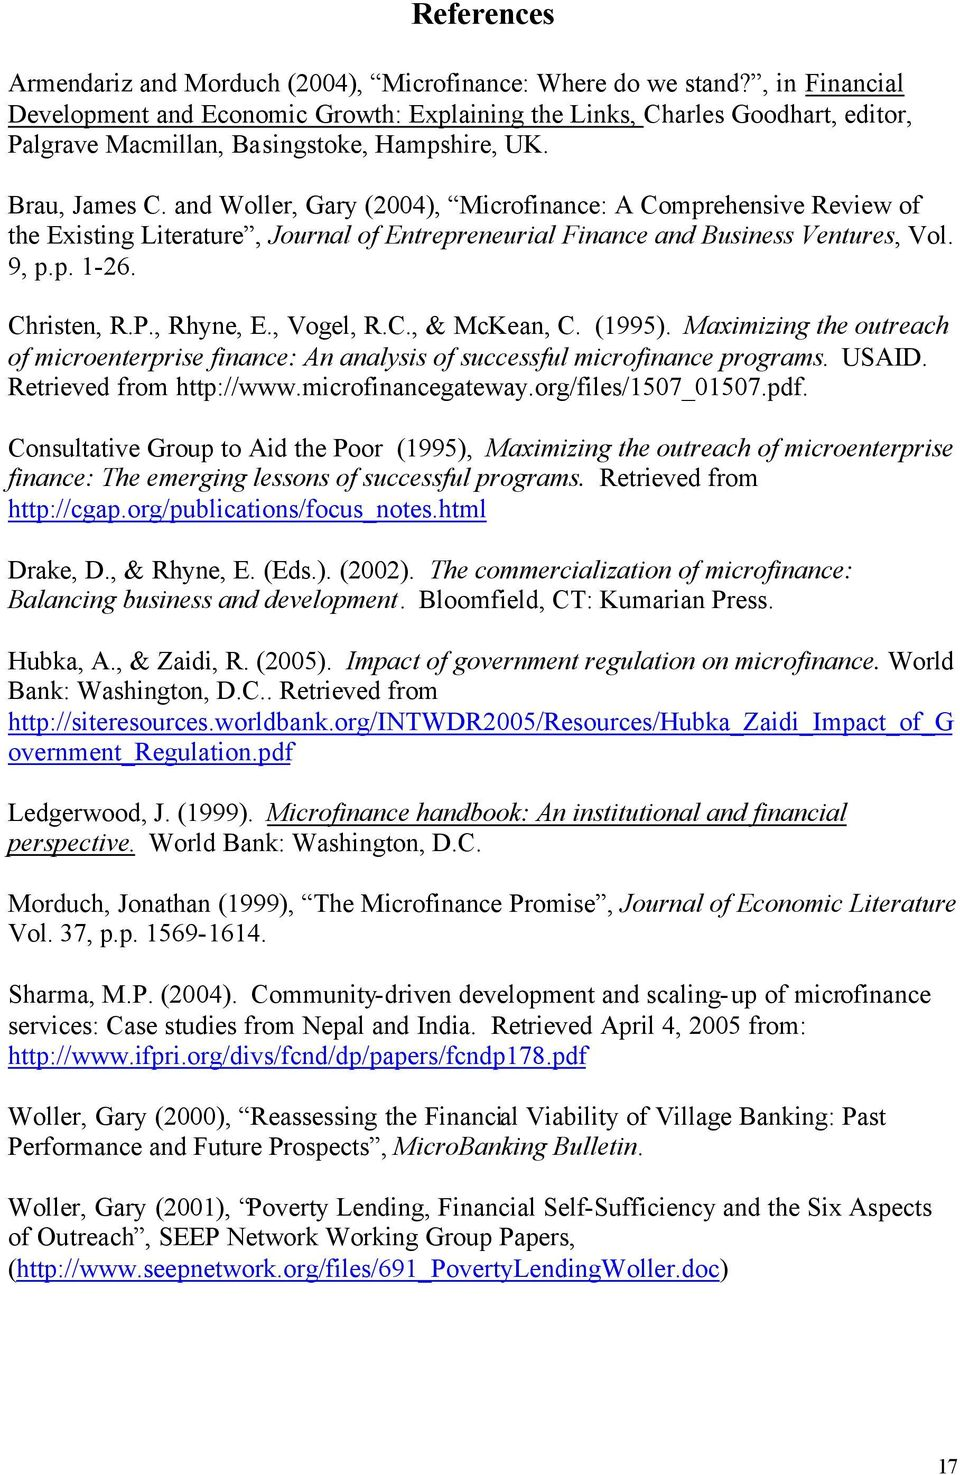 and Woller, Gary (2004), Microfinance: A Comprehensive Review of the Existing Literature, Journal of Entrepreneurial Finance and Business Ventures, Vol. 9, p.p. 1-26. Christen, R.P., Rhyne, E.